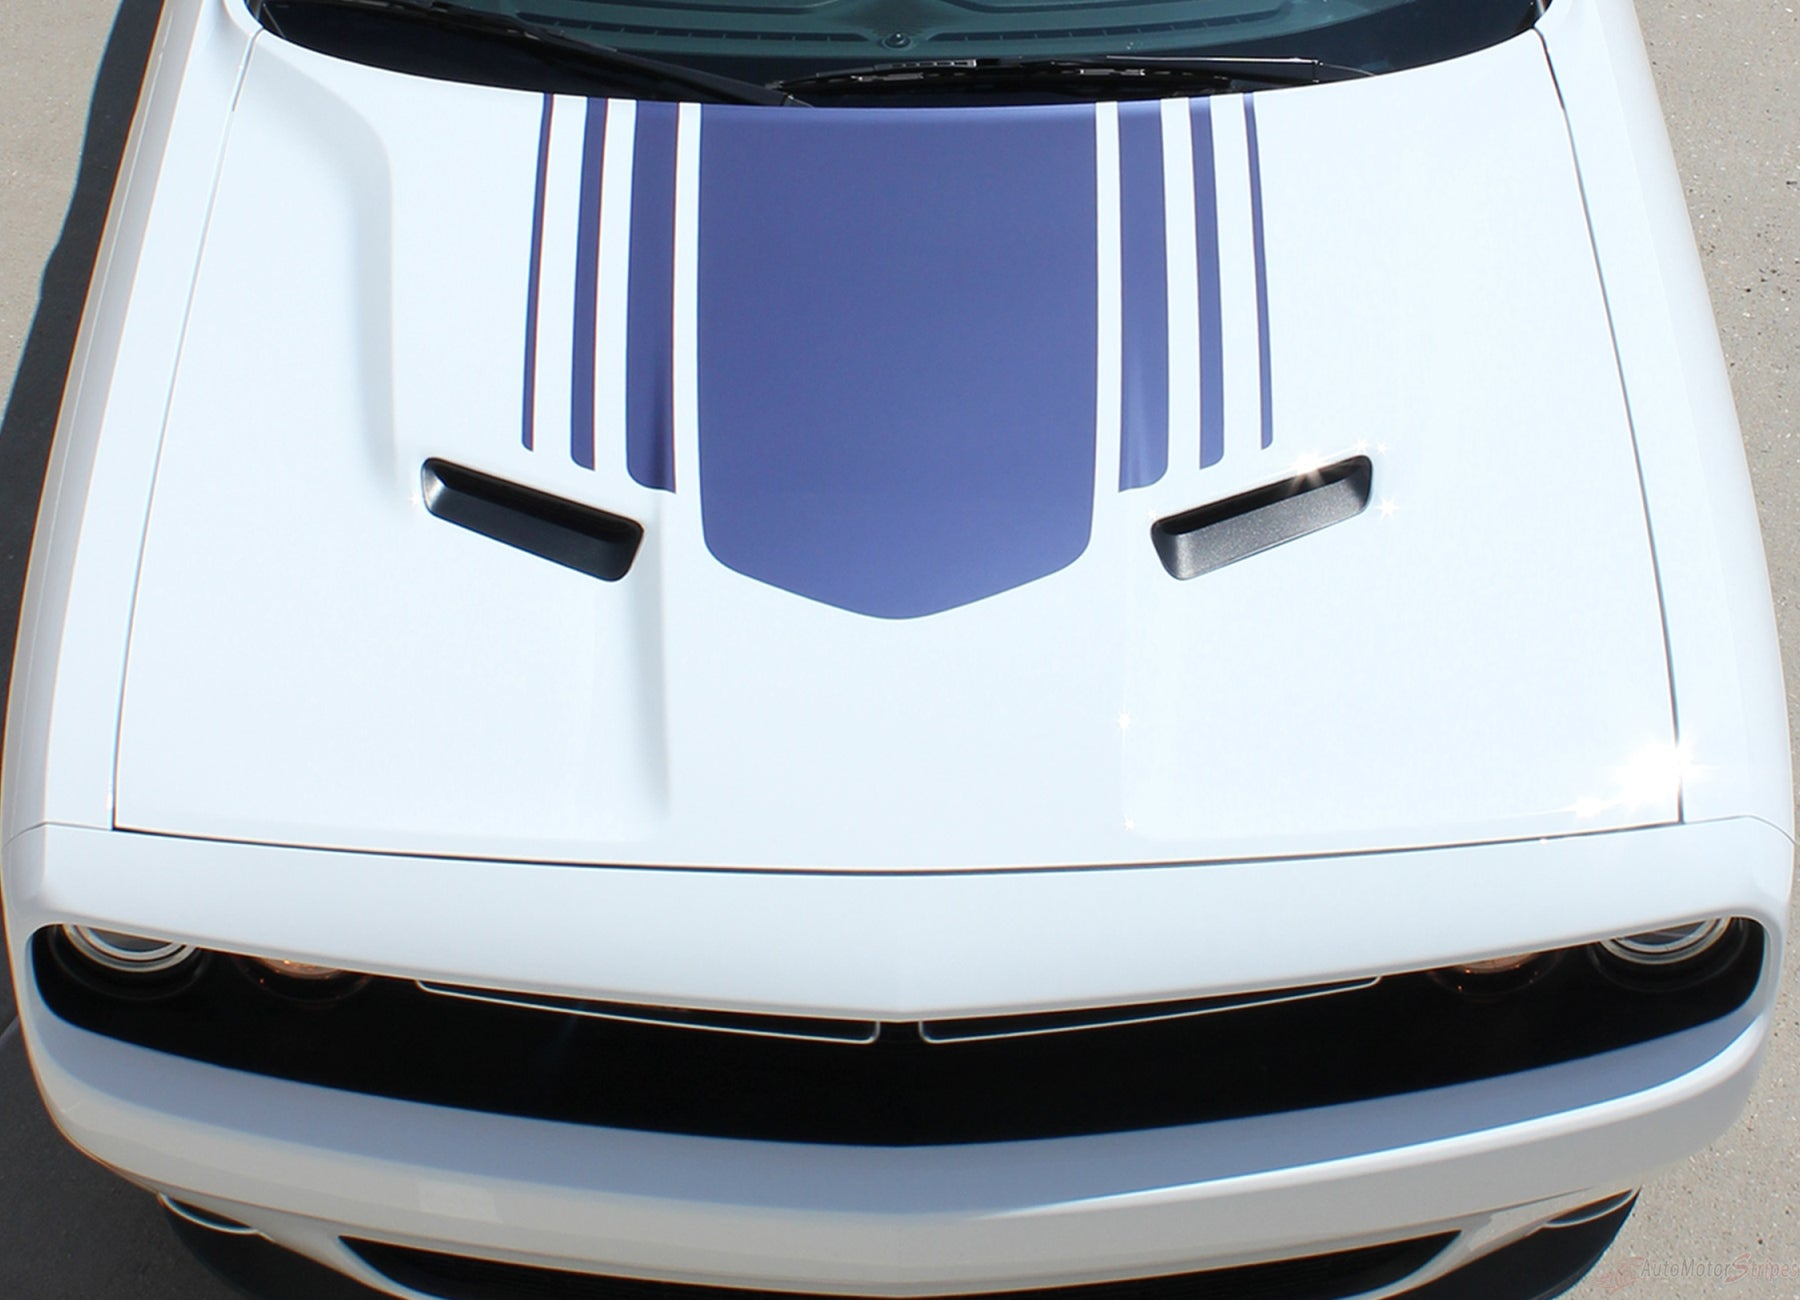 2015 2020 Dodge Challenger Hood Stripes Shaker Decals Vinyl Graphic Auto Motor Stripes Decals Vinyl Graphics And 3m Striping Kits